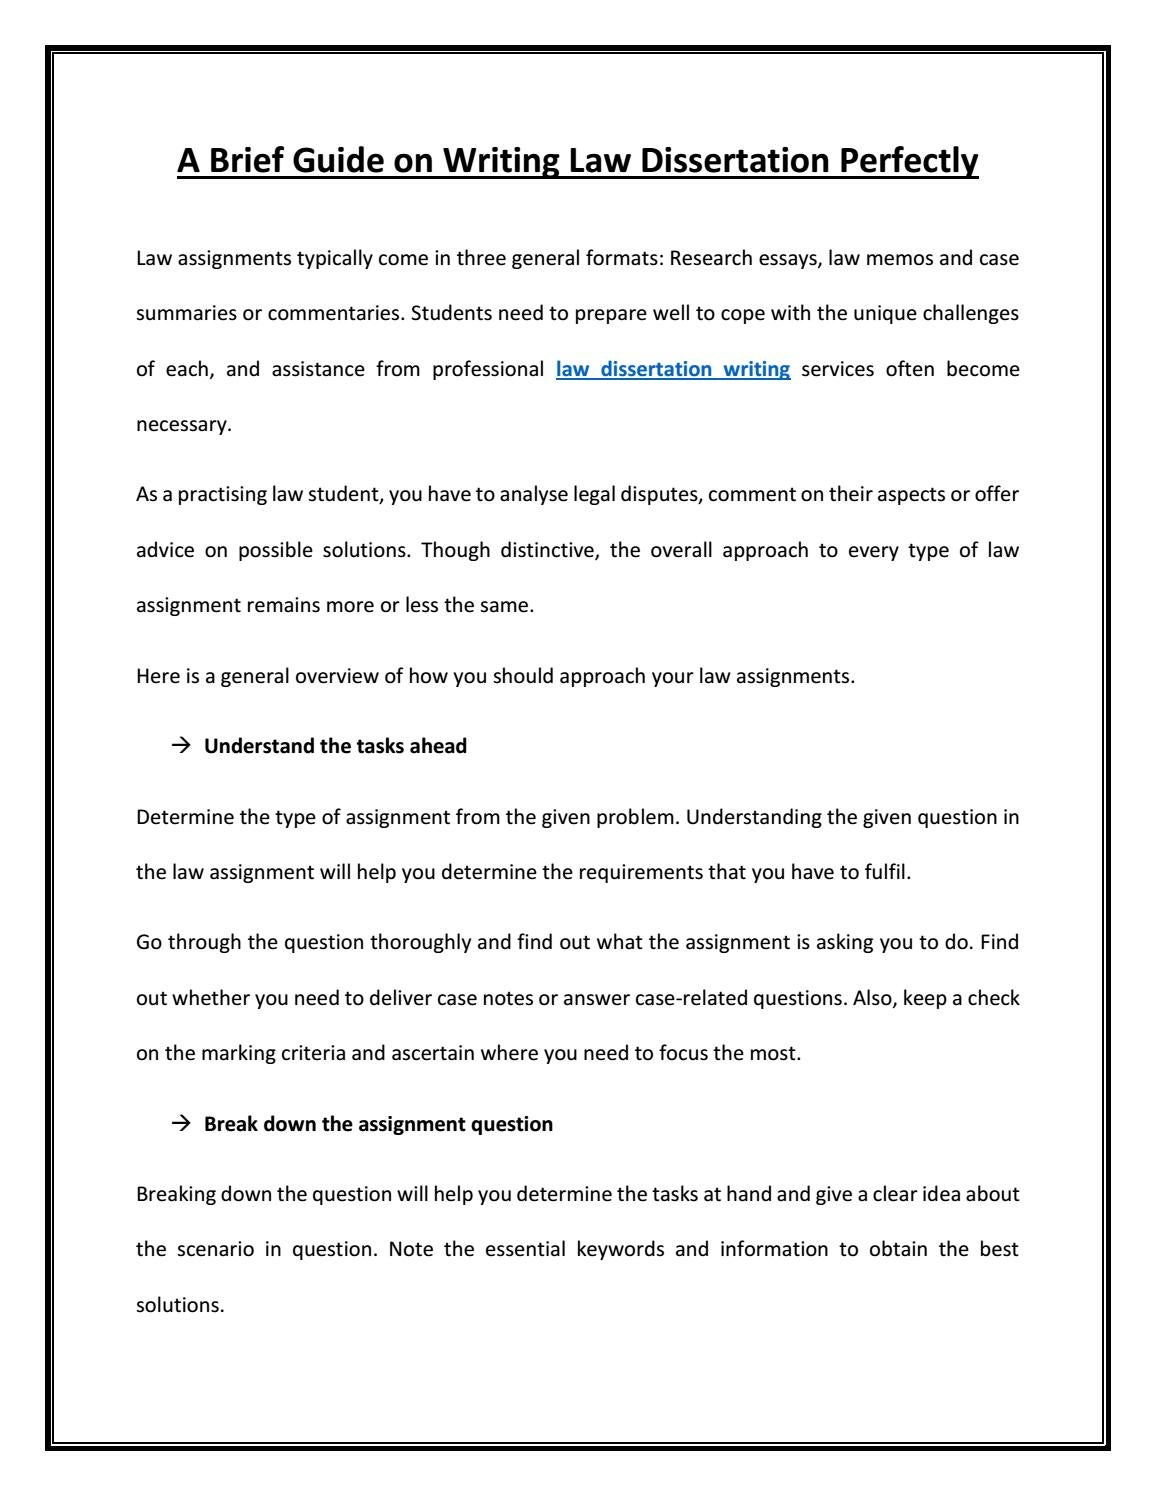 Law dissertation guidelines for research paper writing